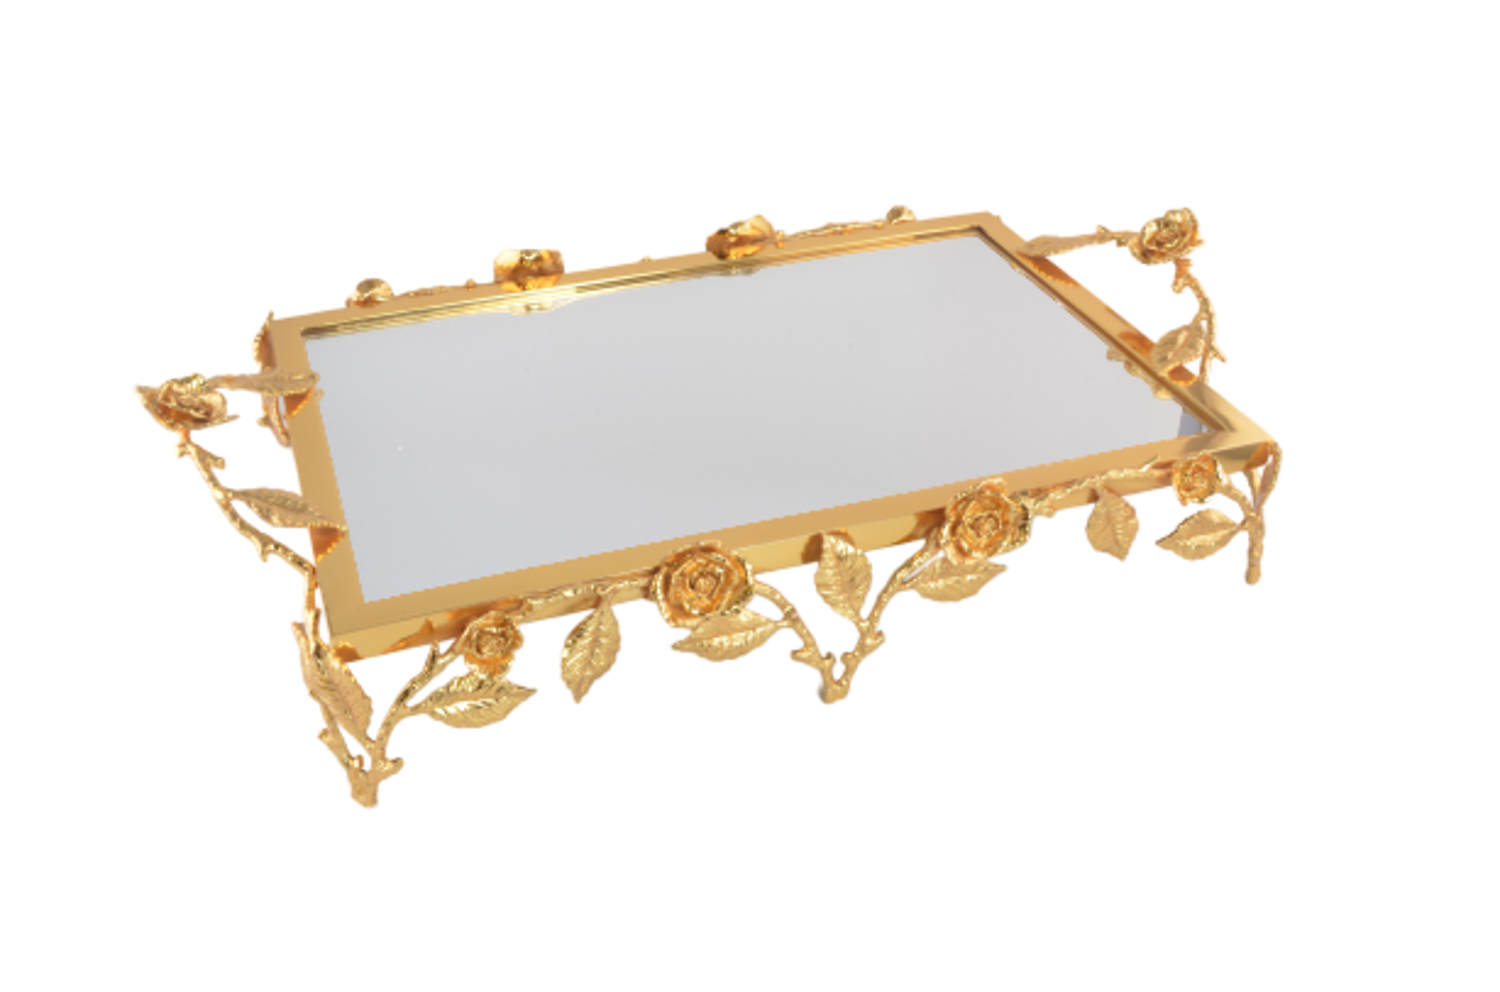 MEVLANA TRAIL RECTANGLE IVY GOLD WITH MIRROR resmi